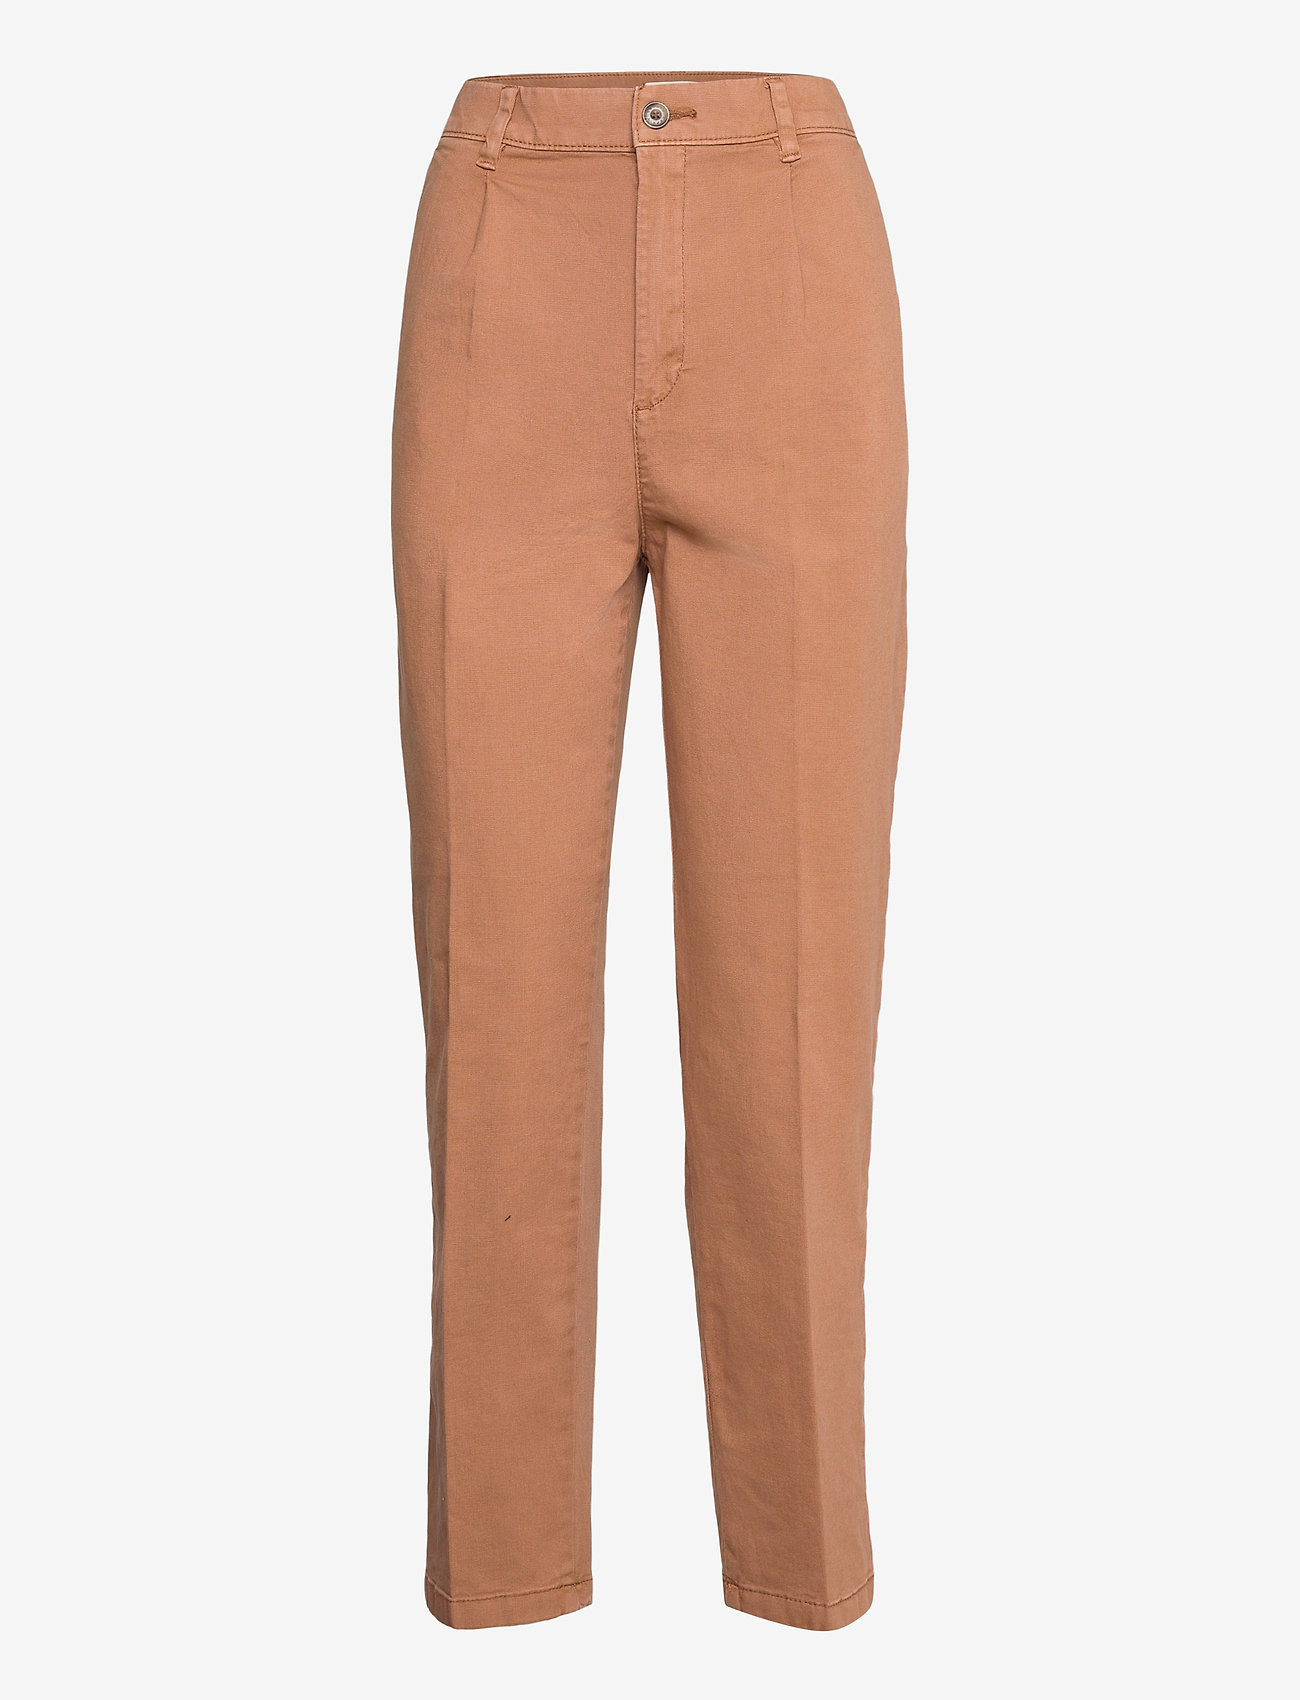 Esprit Casual - Pants woven - chinos - rust brown - 0